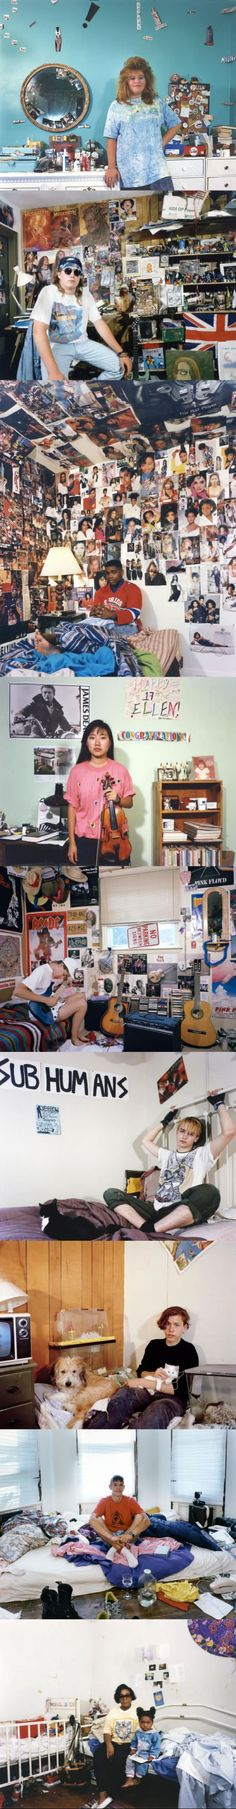 Iconic Photos of 90s Teens in their Bedrooms (by Adrienne Salinger)